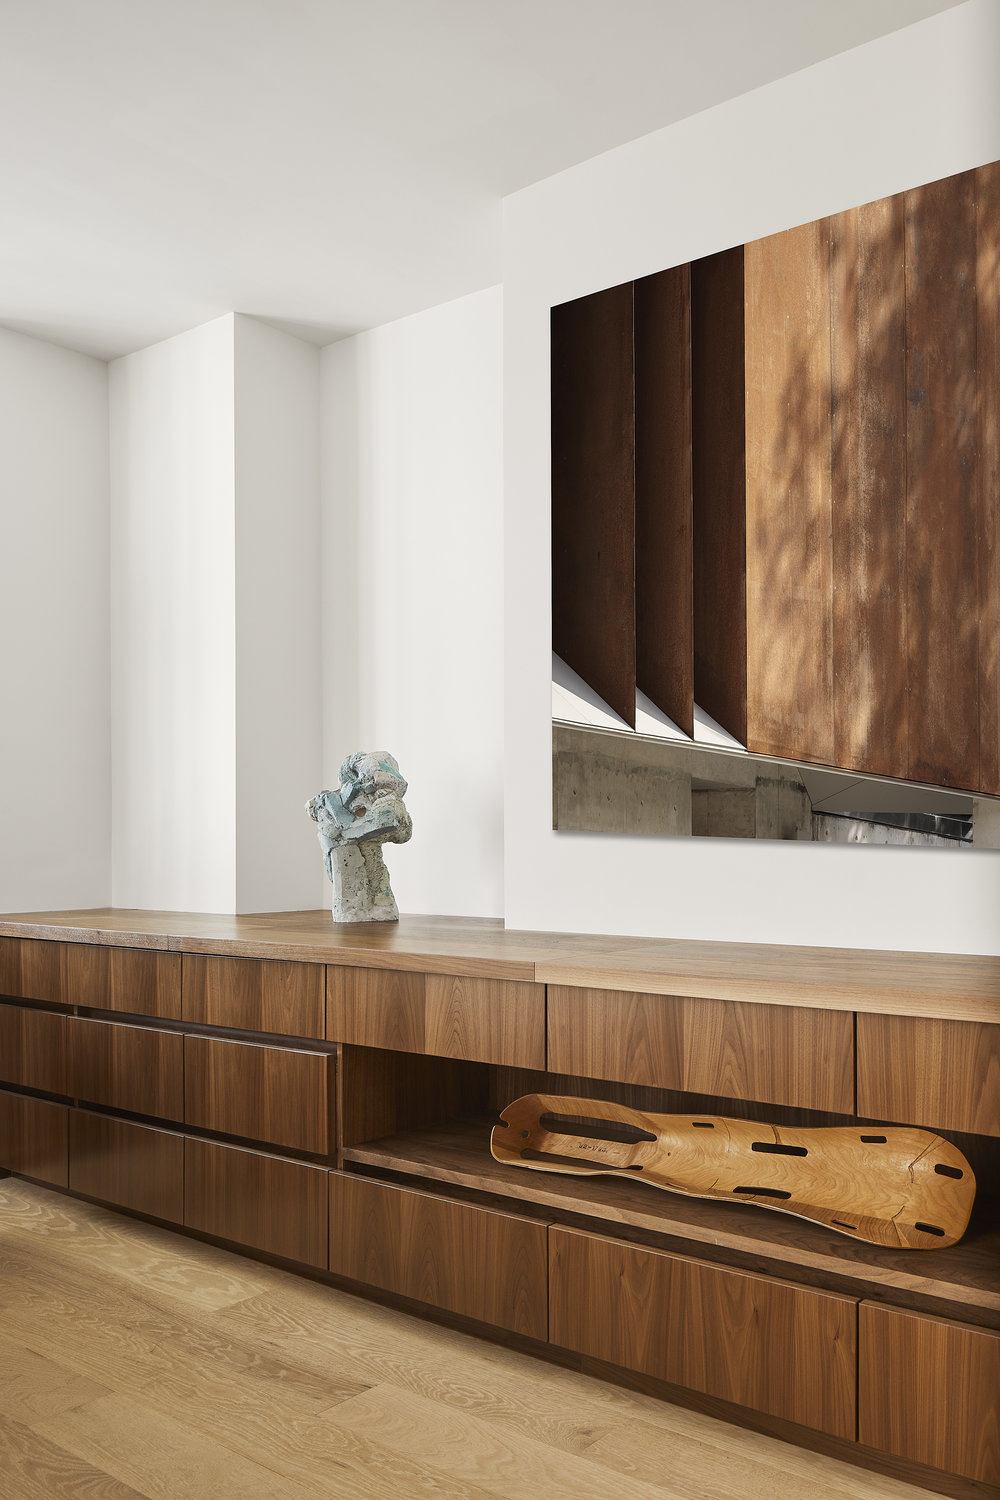 turkel_design_modern_prefab_home_soho_loft_cabinetry_storage.jpg